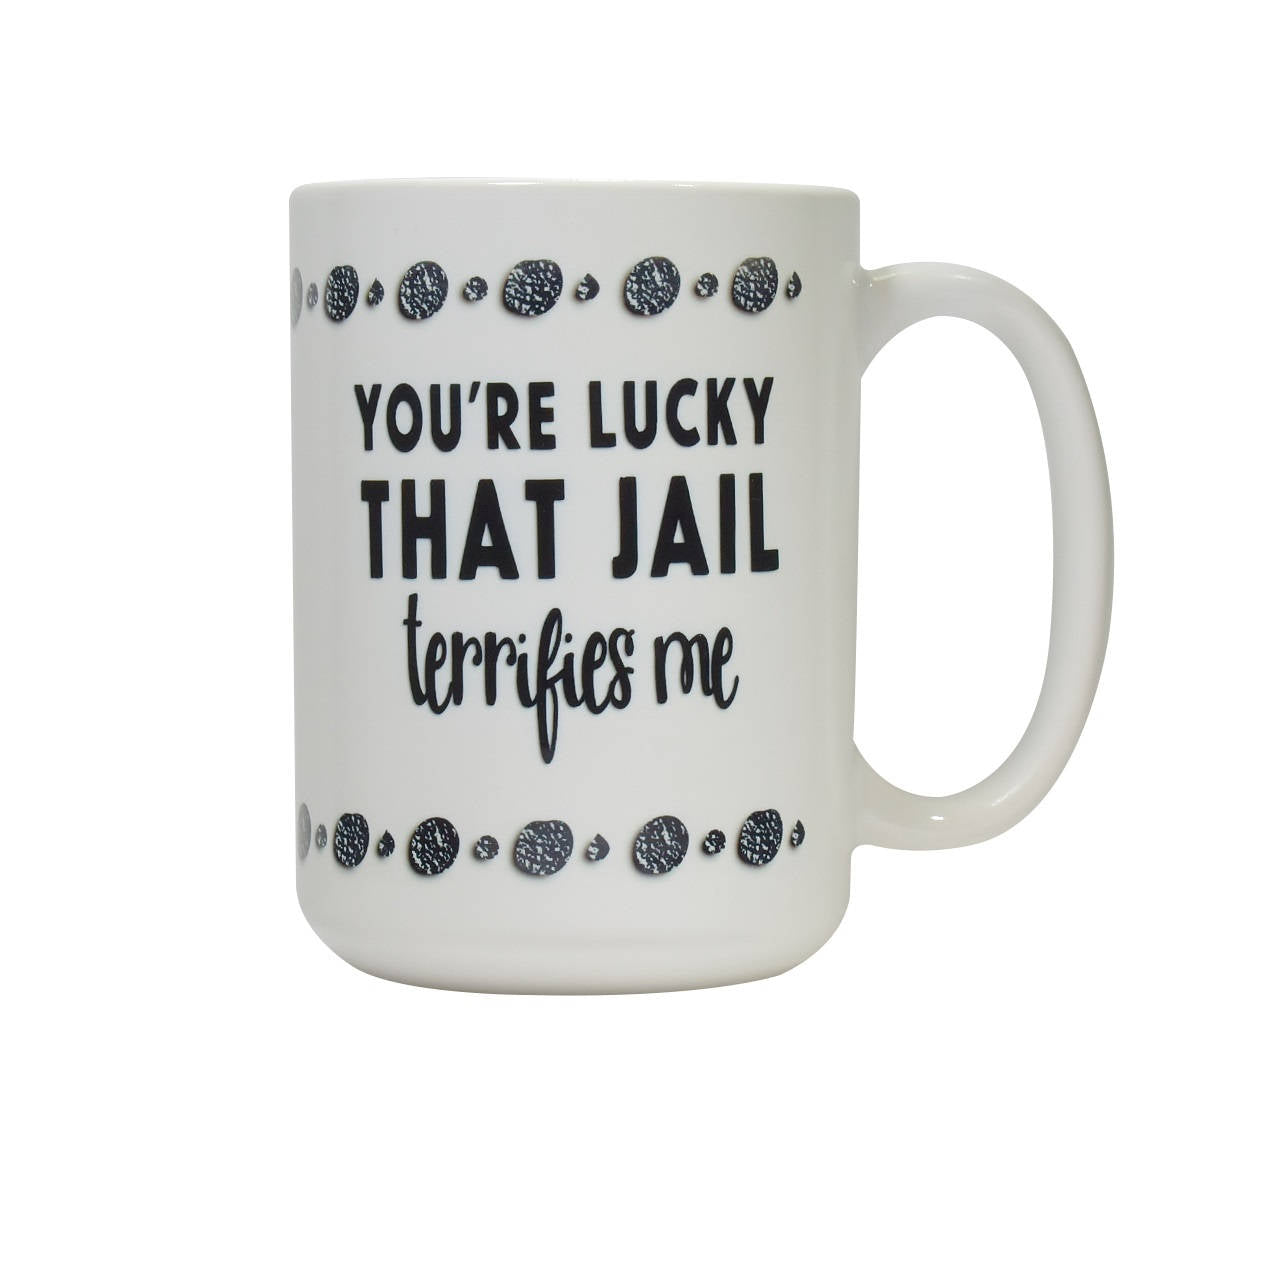 You're Lucky That Jail Terrifies Me coffee mug | Friend Coffee Mug Gift | Coworker Gift | Funny coffee Cup Gift | Sister Gift | Brother Gift